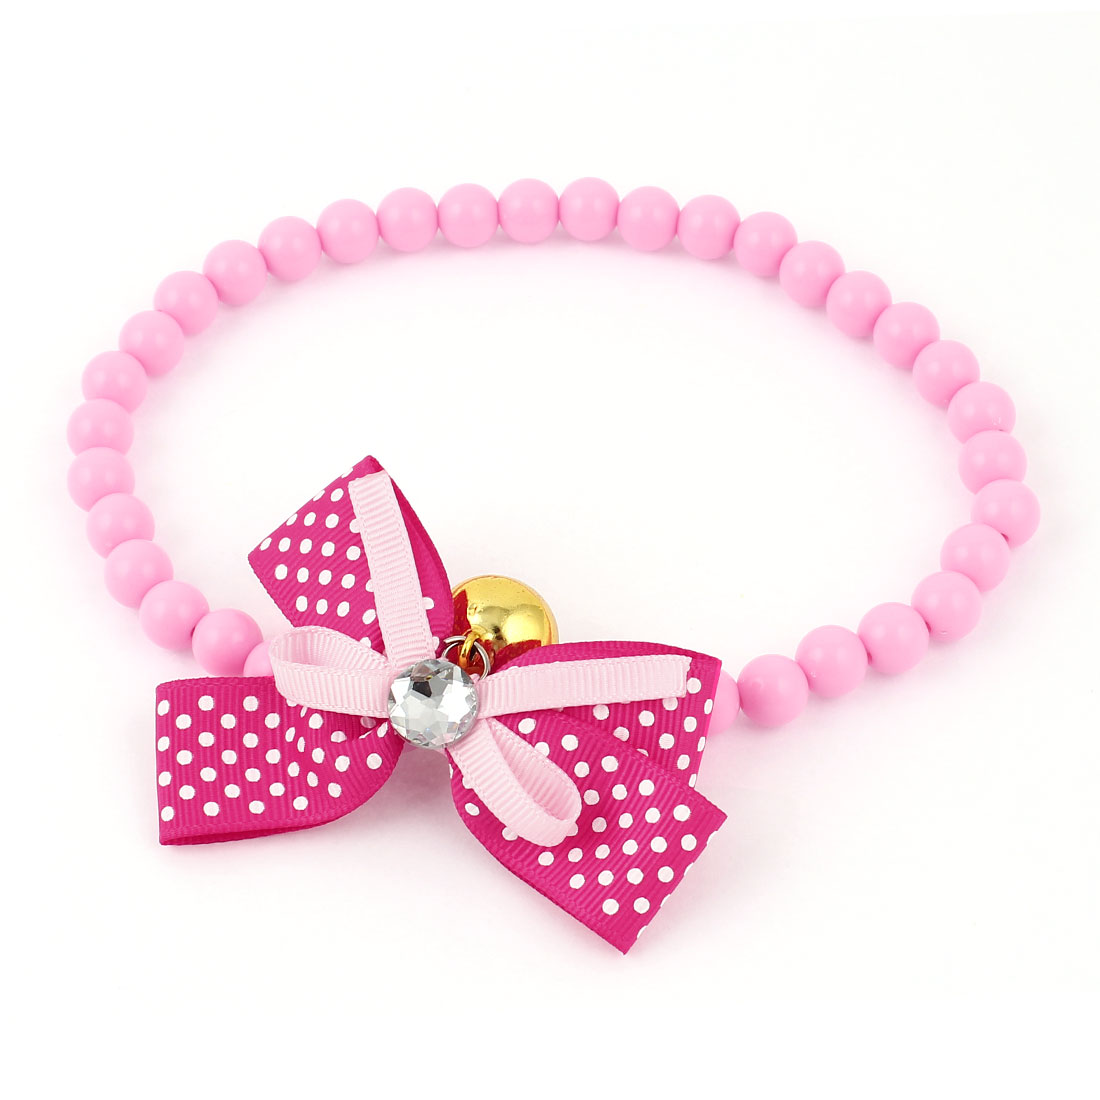 Metal Bell Pendant Bowtie Accent Pet Dog Plastic Beads Collar Necklace Pink Fuchsia L